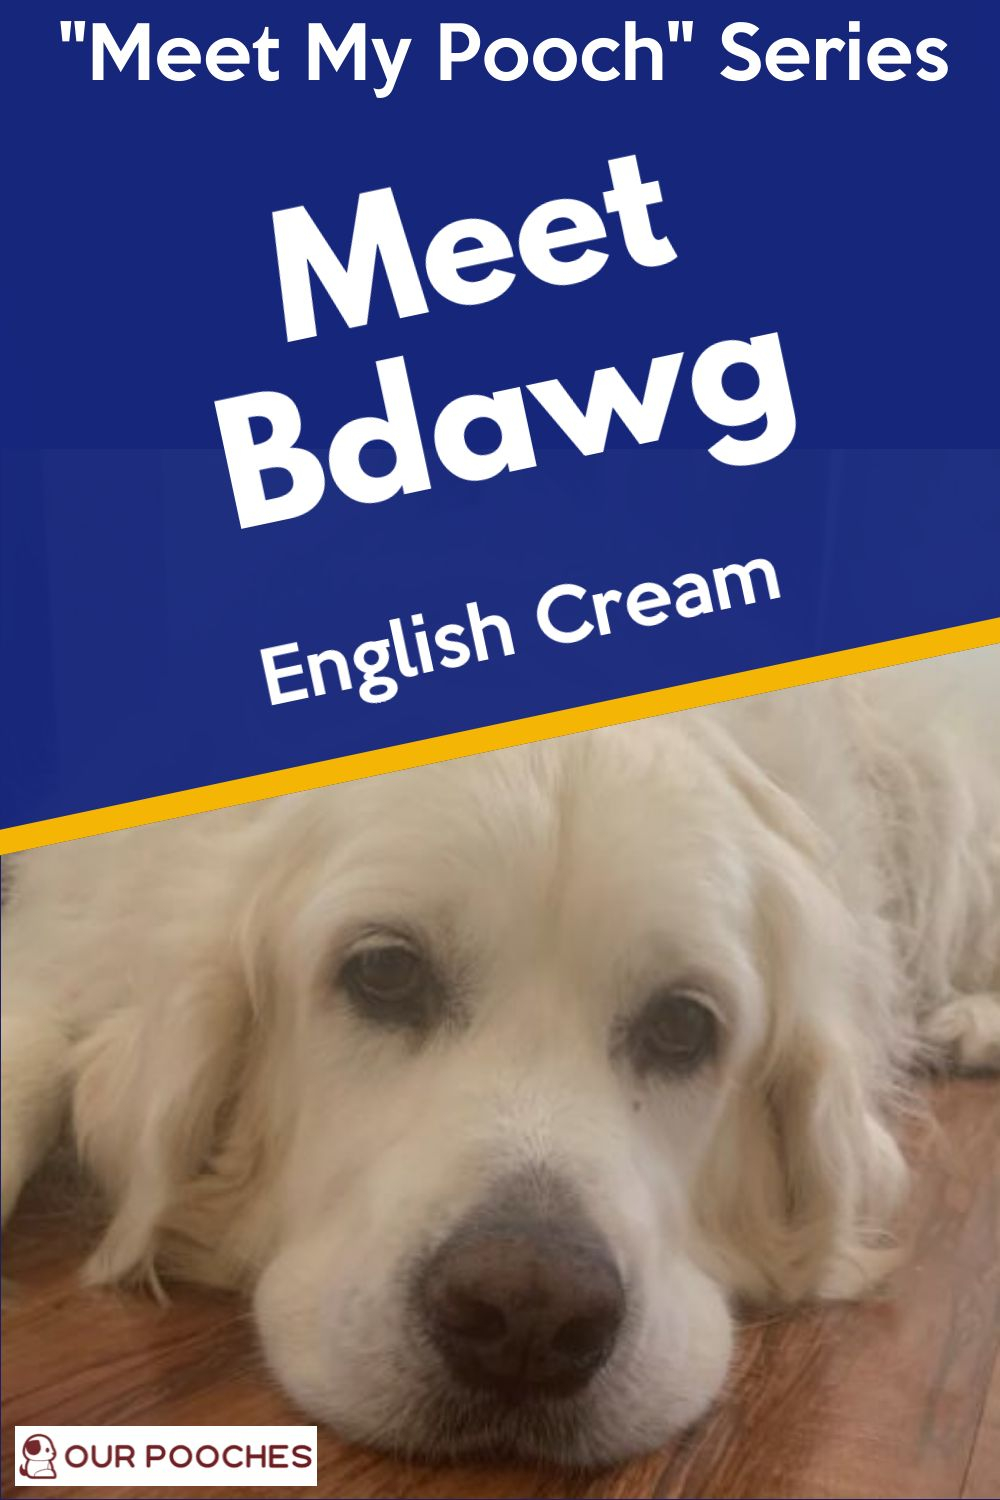 Meet Bdawg at Our Pooches